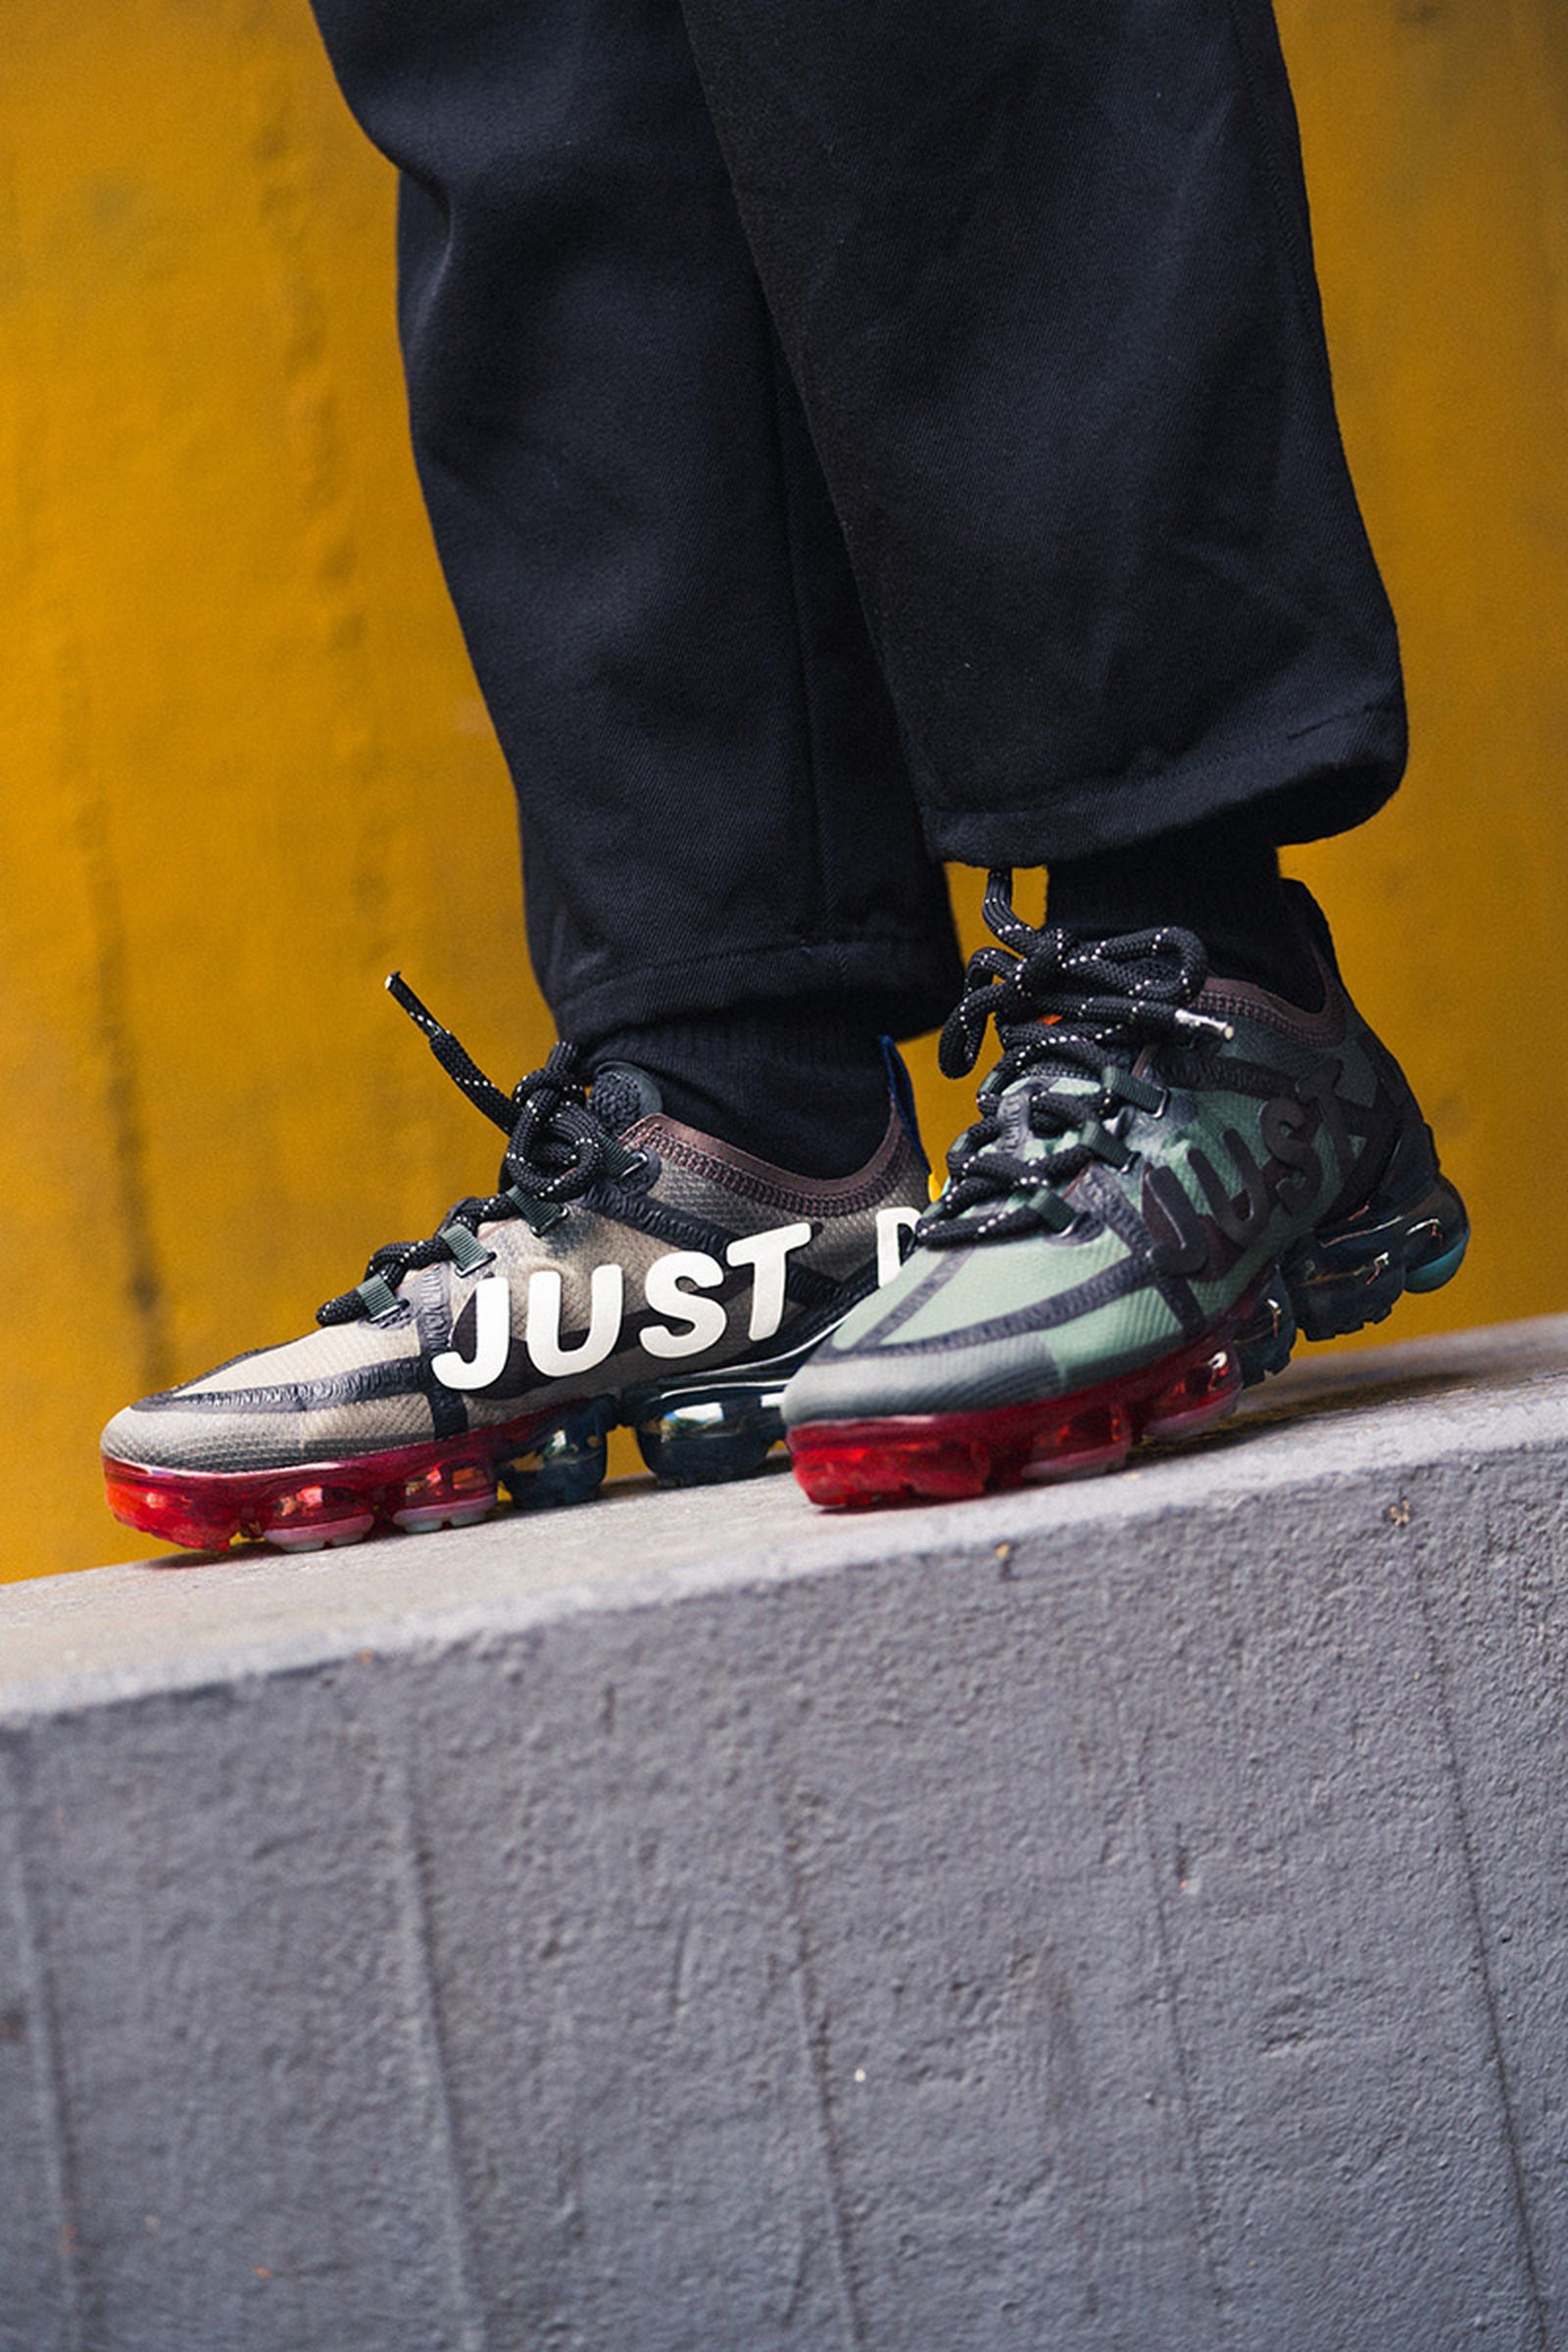 oasis Instalaciones Normal  Cactus Plant Flea Market x Nike VaporMax 2019: Where to Buy Today